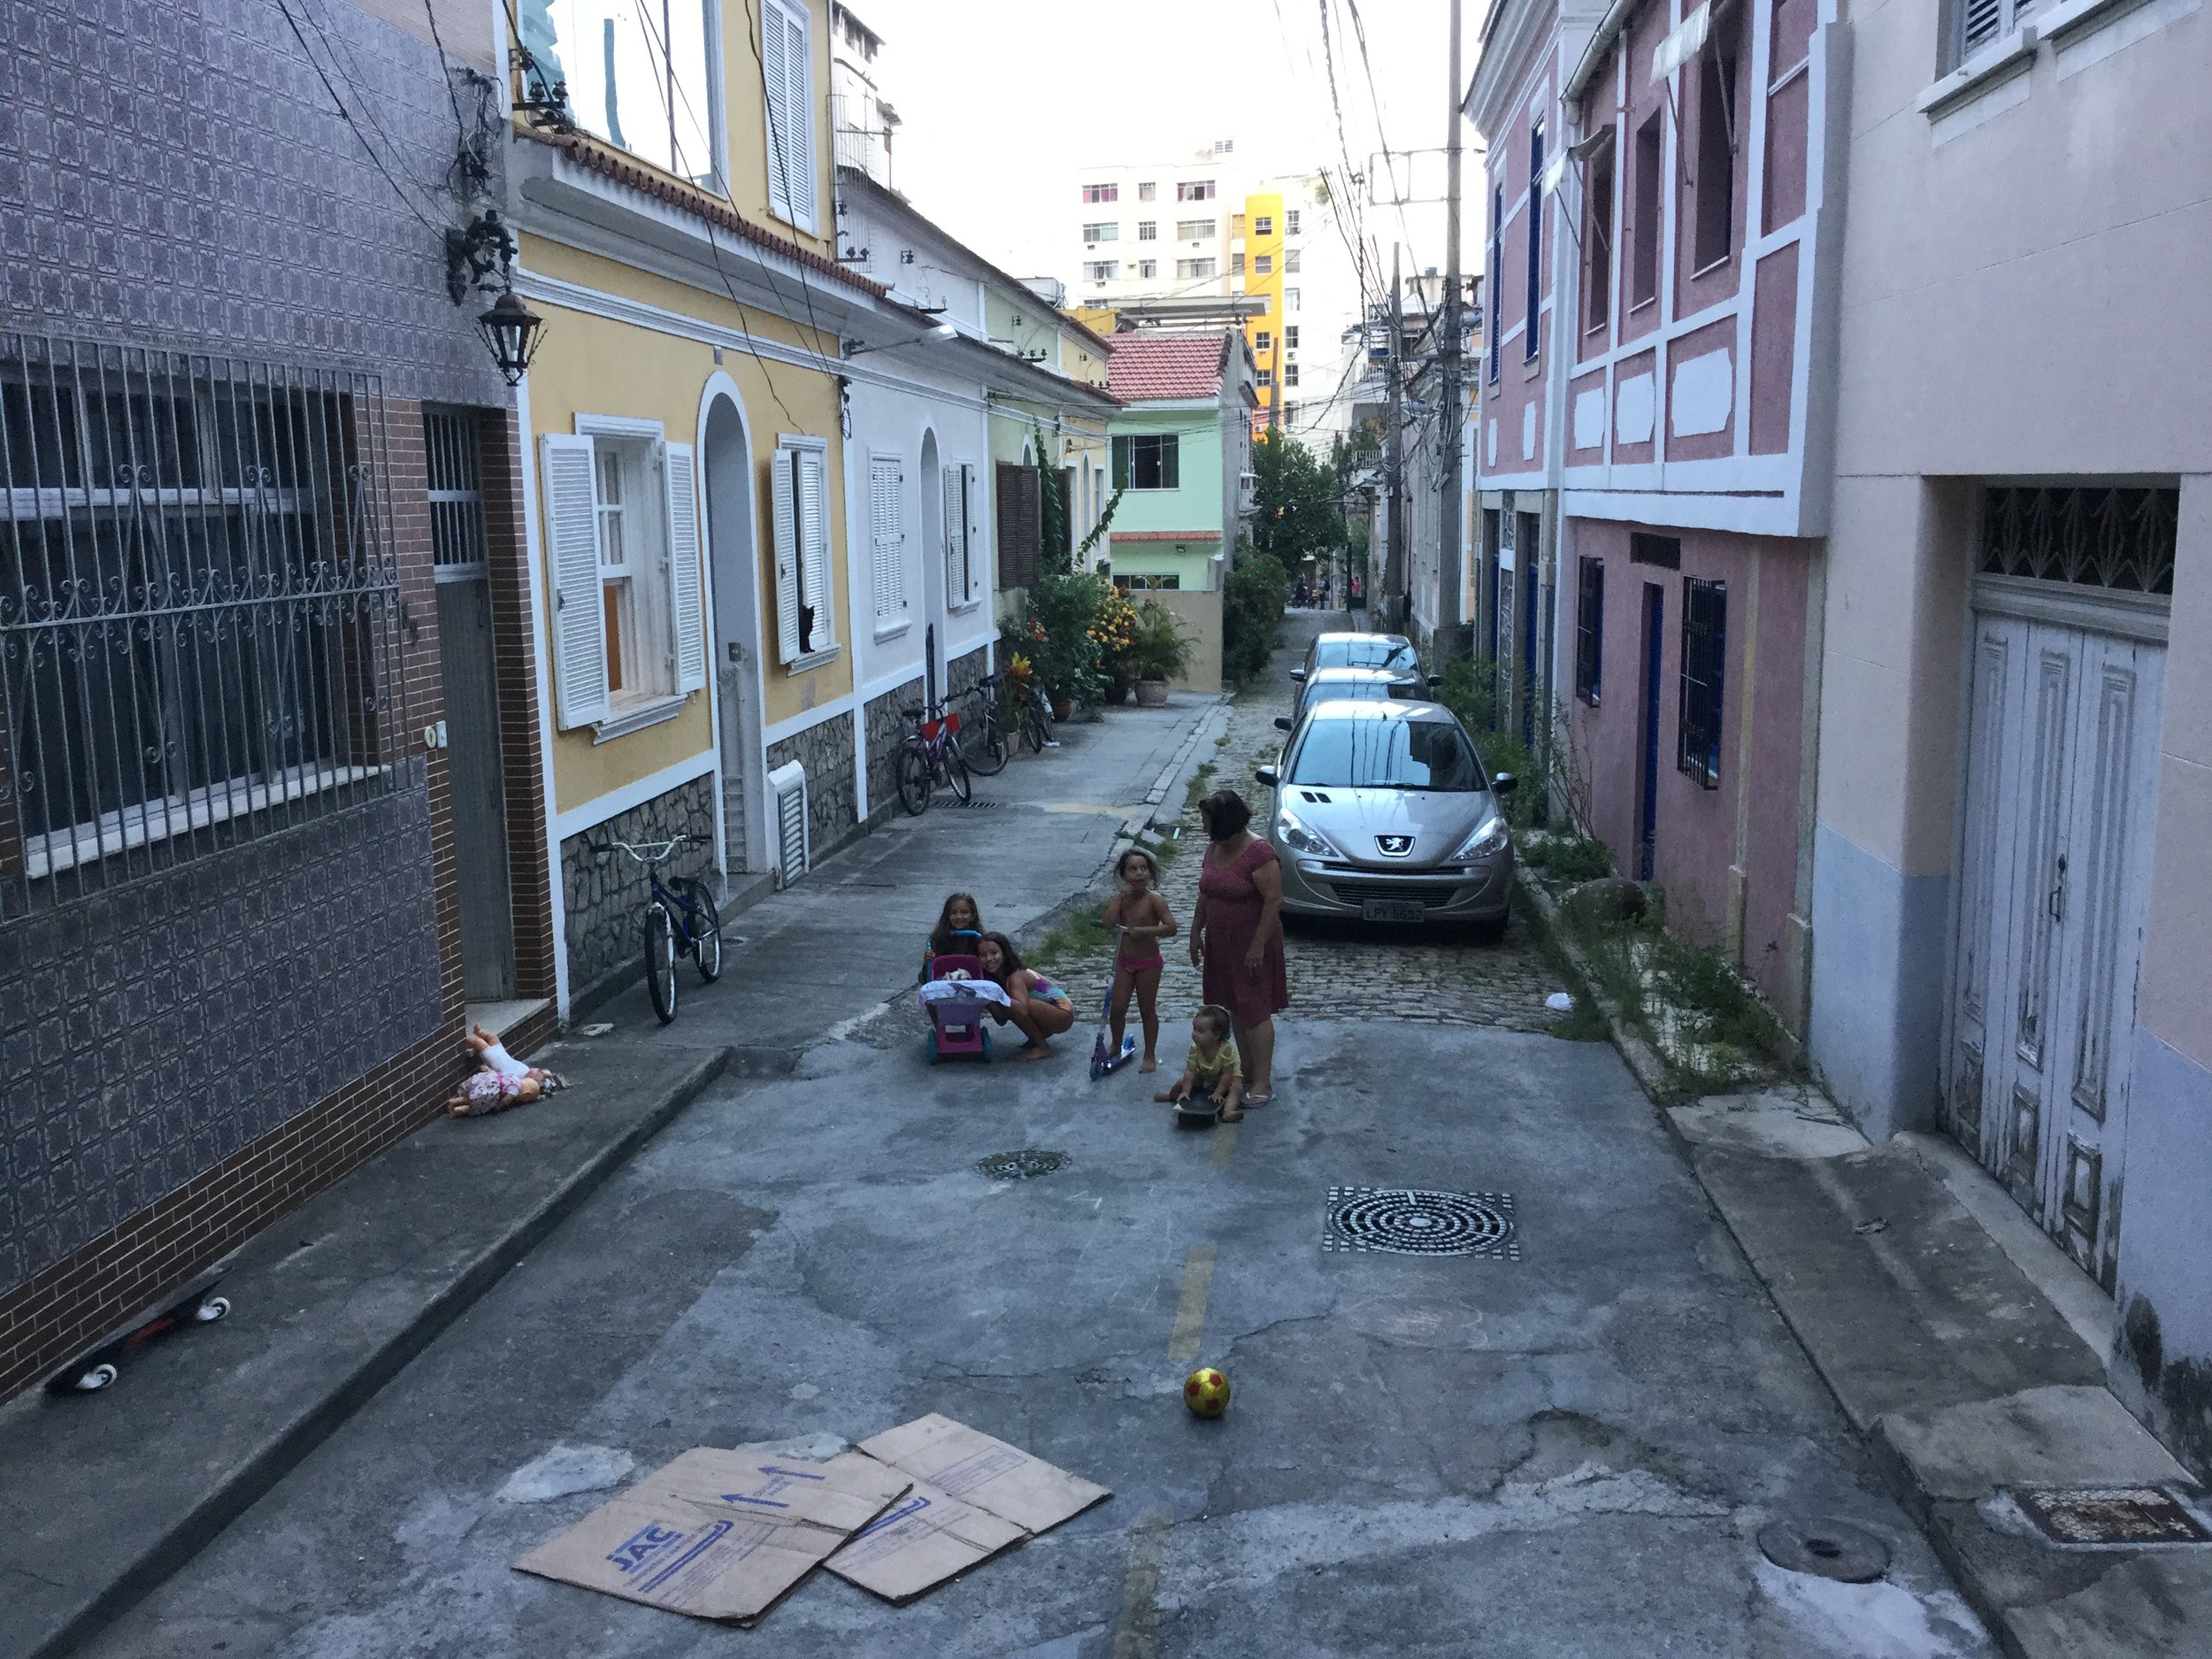 This flat area is at the bottom of the stairs. It is not much more than a parking area but it became the stage for numerous games and fun for the children.